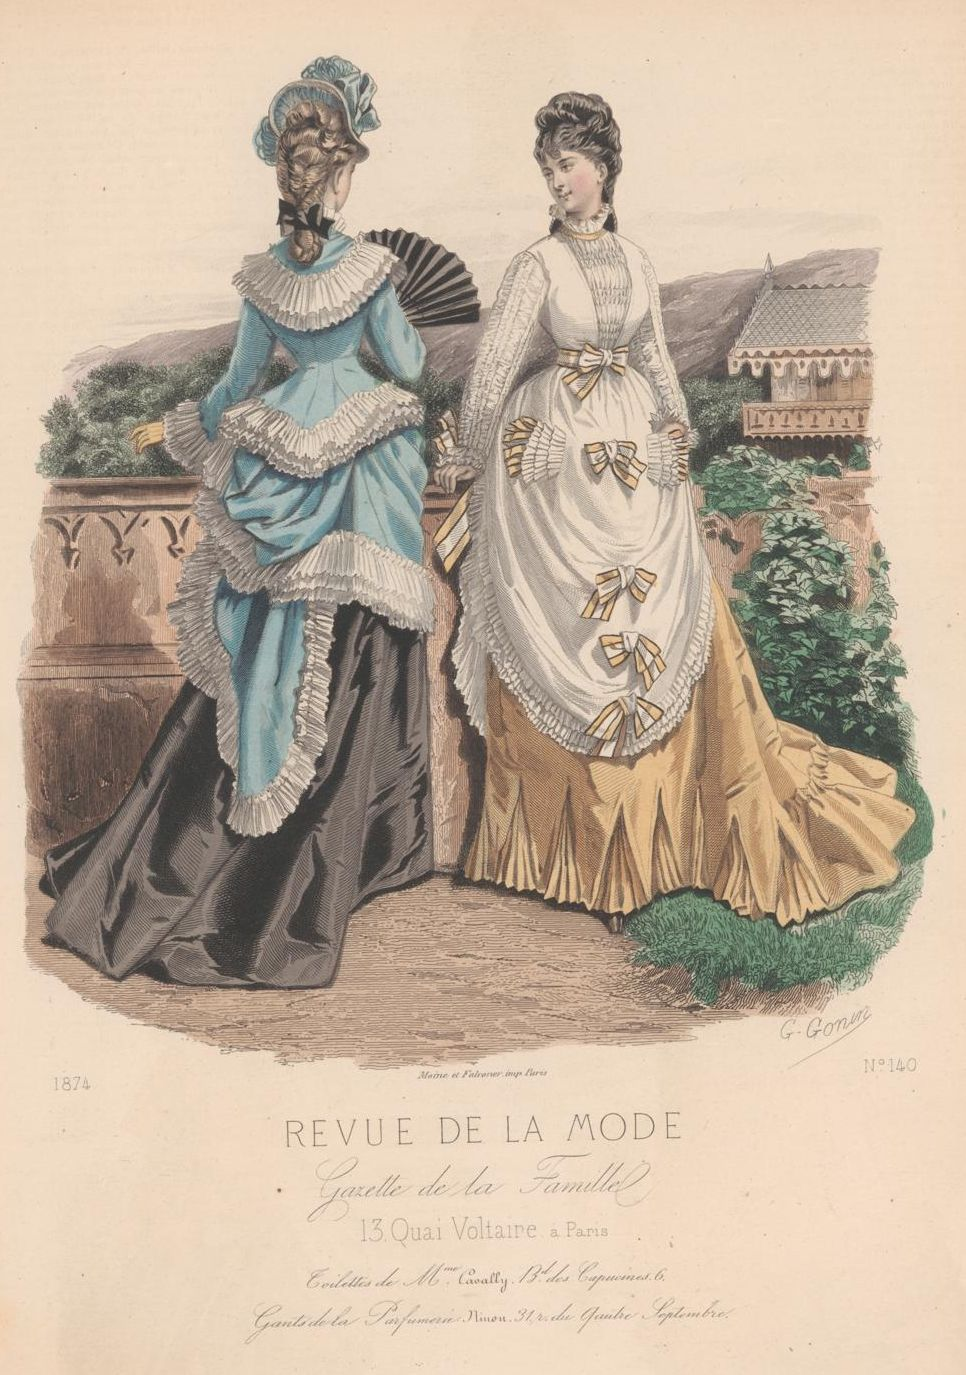 revue de la mode 1874 1874s fashion plates pinterest bustle victorian and victorian fashion. Black Bedroom Furniture Sets. Home Design Ideas